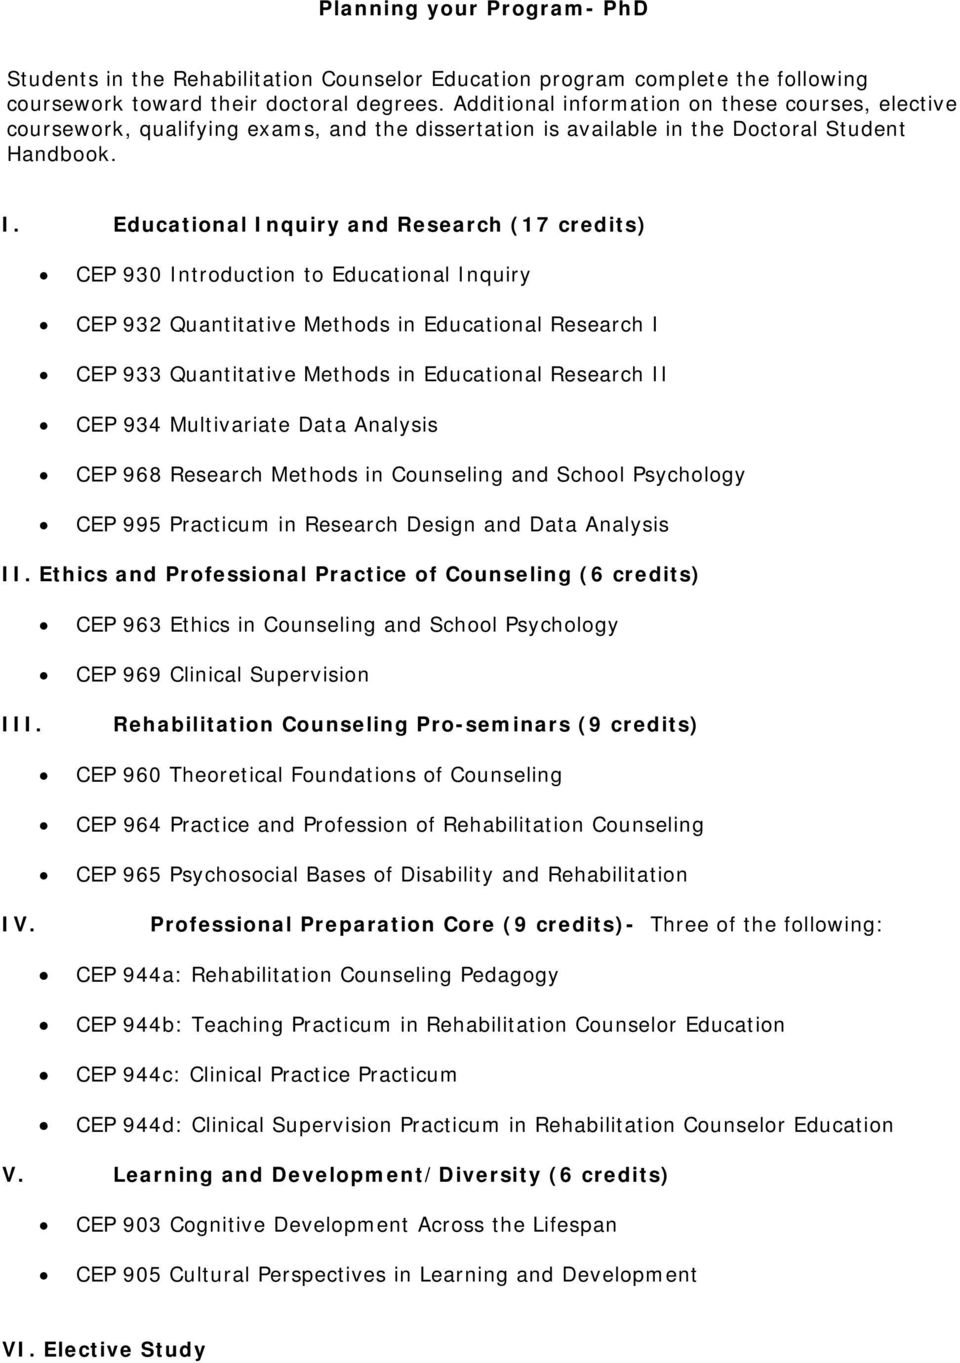 Educational Inquiry and Research (17 credits) CEP 930 Introduction to Educational Inquiry CEP 932 Quantitative Methods in Educational Research I CEP 933 Quantitative Methods in Educational Research